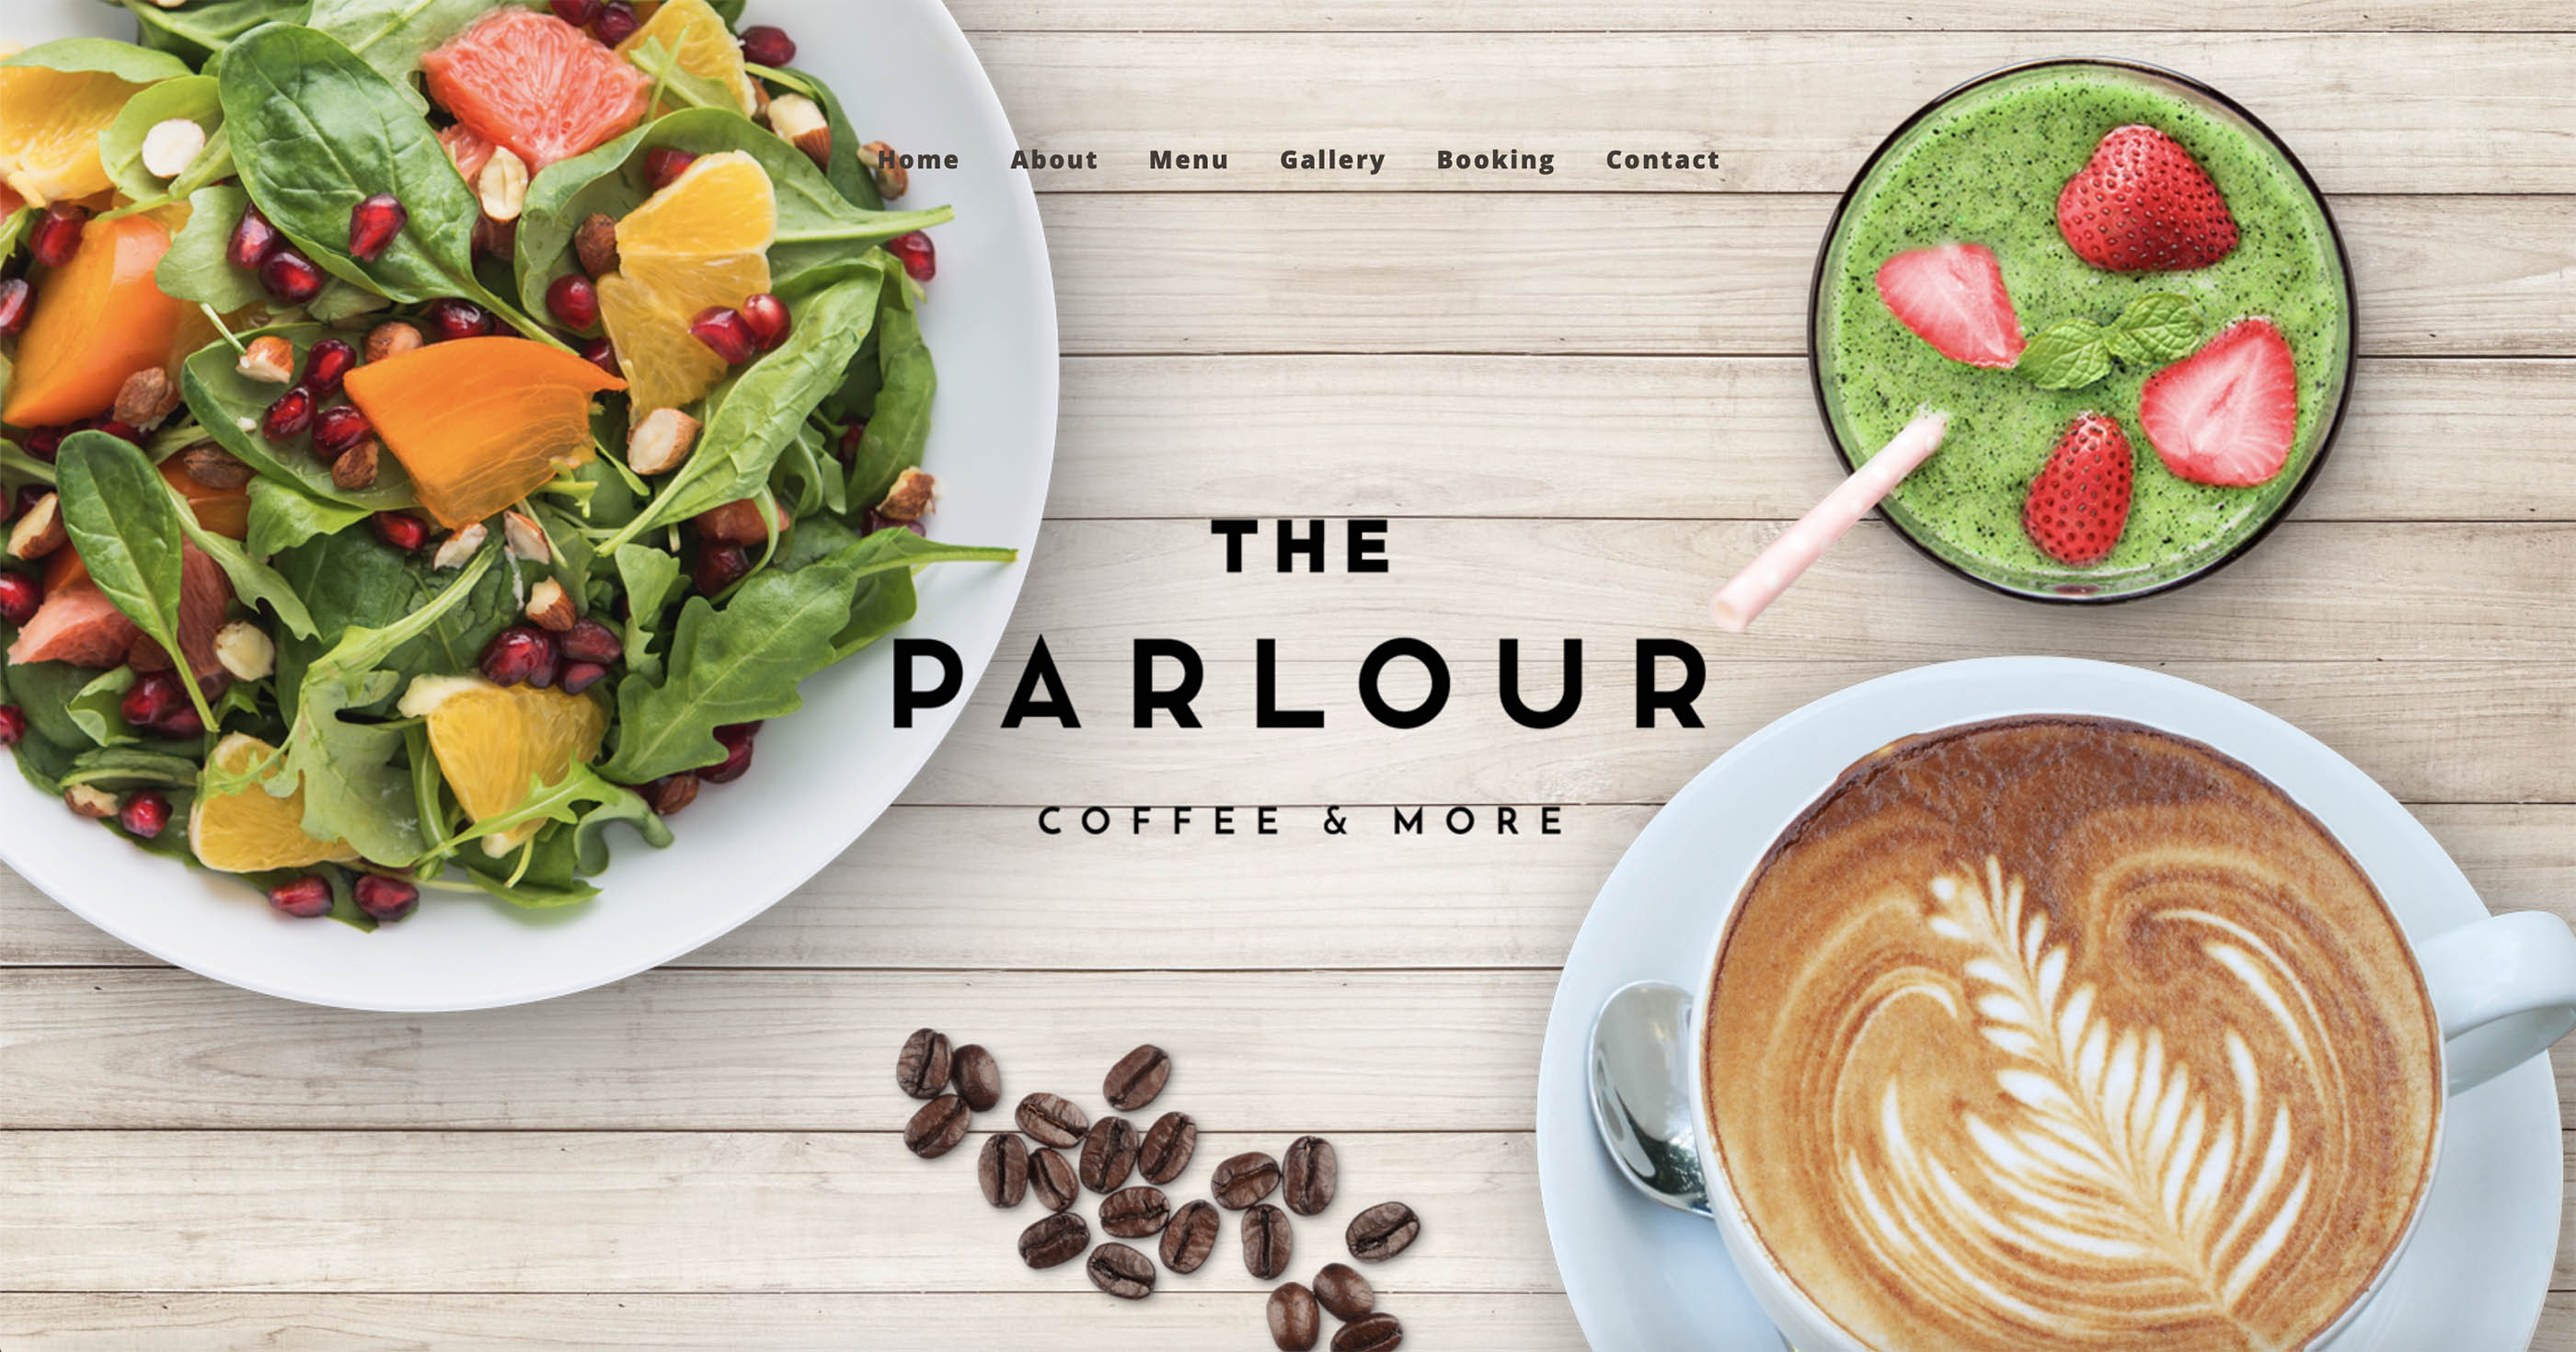 Cafe WordPress Web Designer London